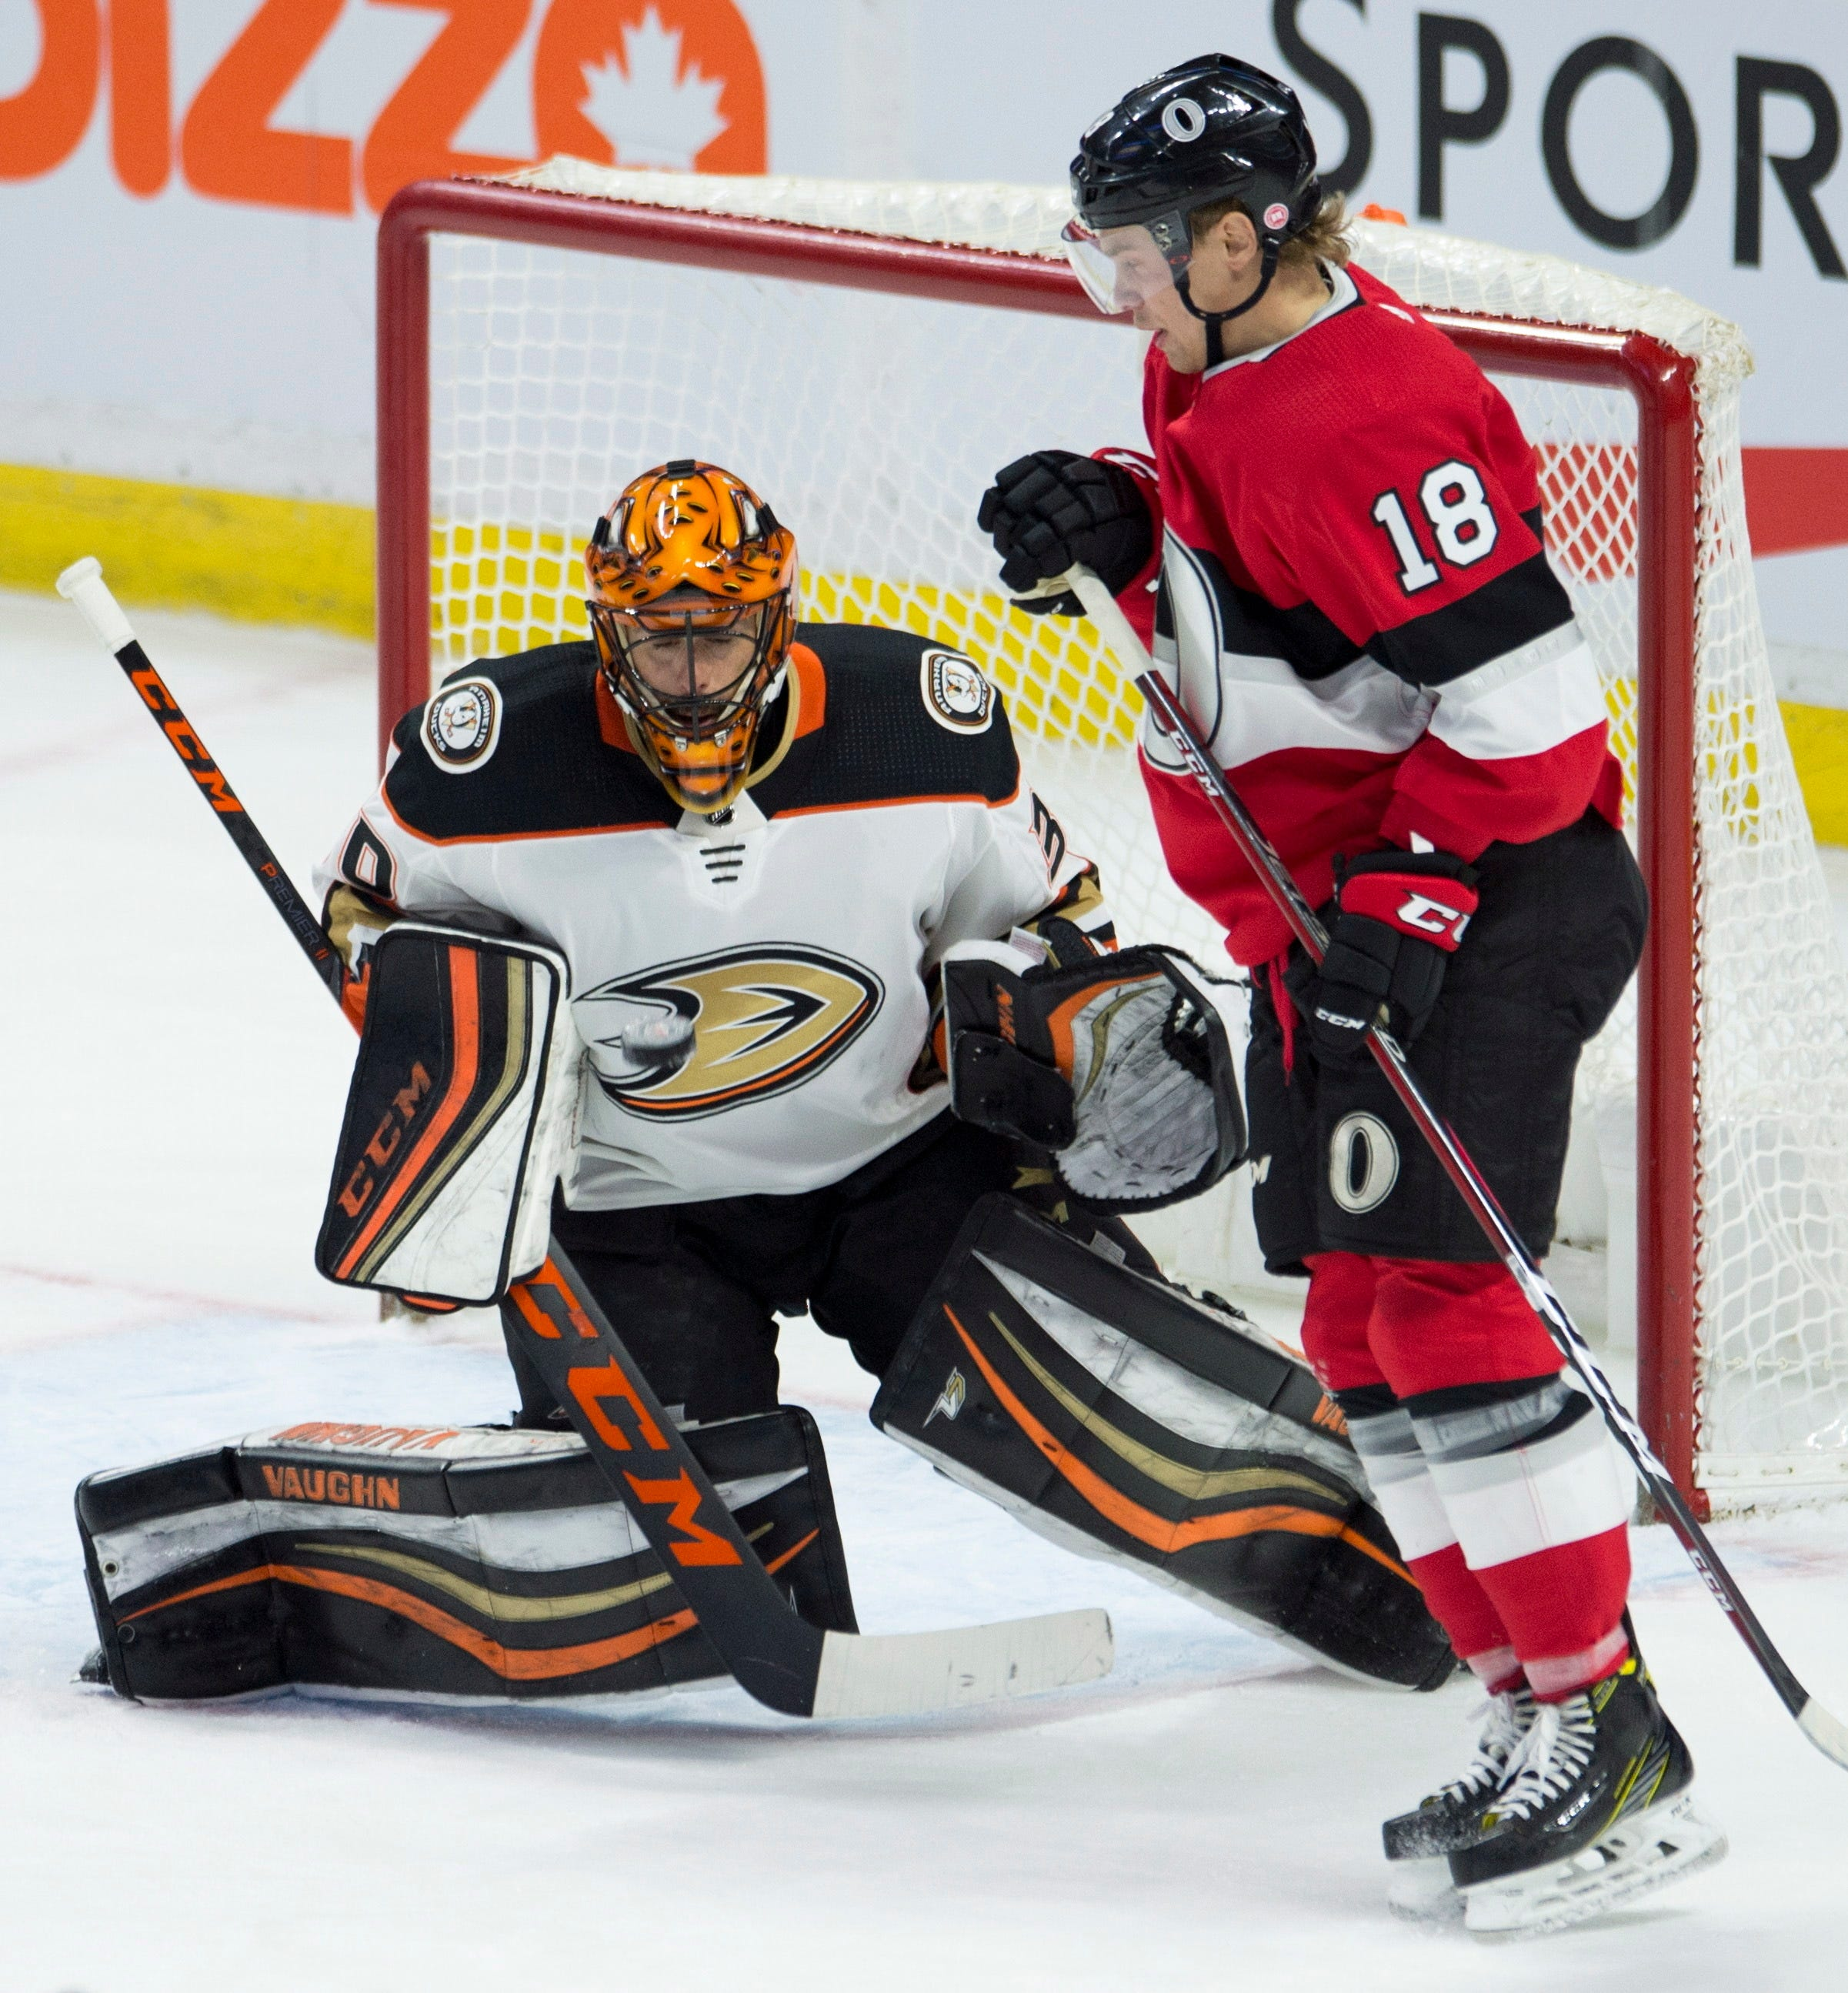 Karlsson scores in OT to end Senators' skid at 6 games